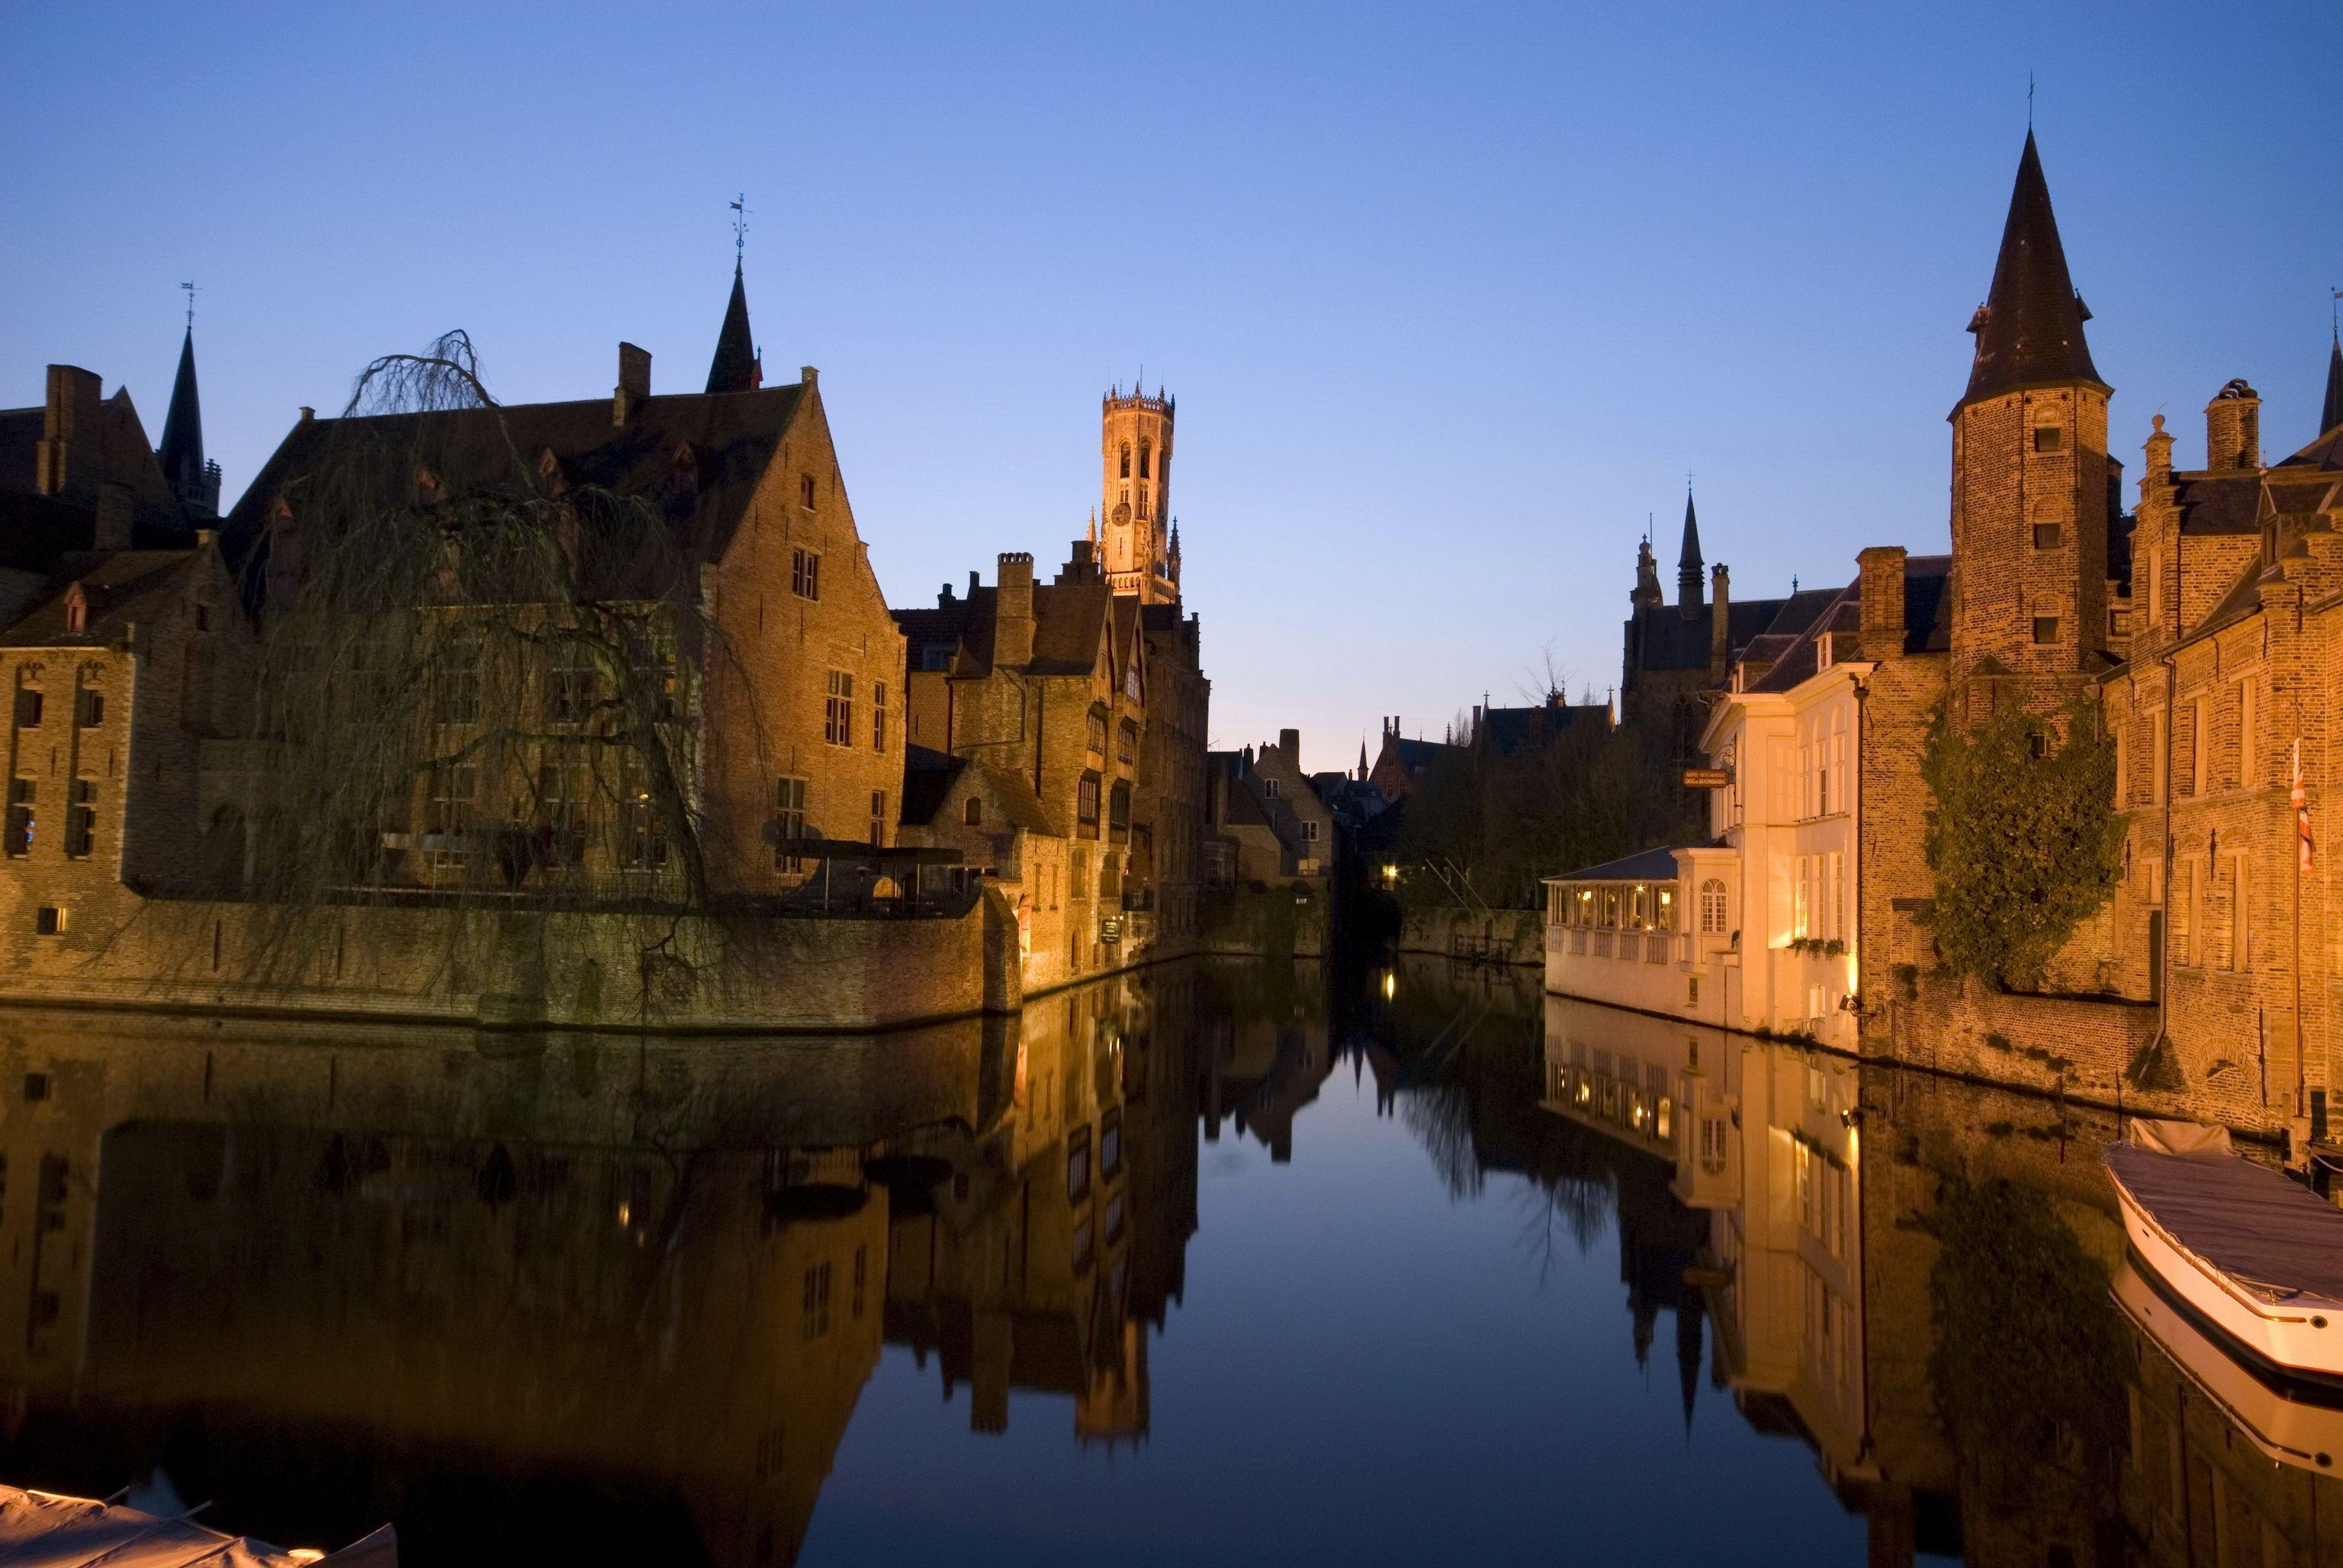 Wallpapers Belgium Houses Rivers Bruge Night Canal Cities download ...